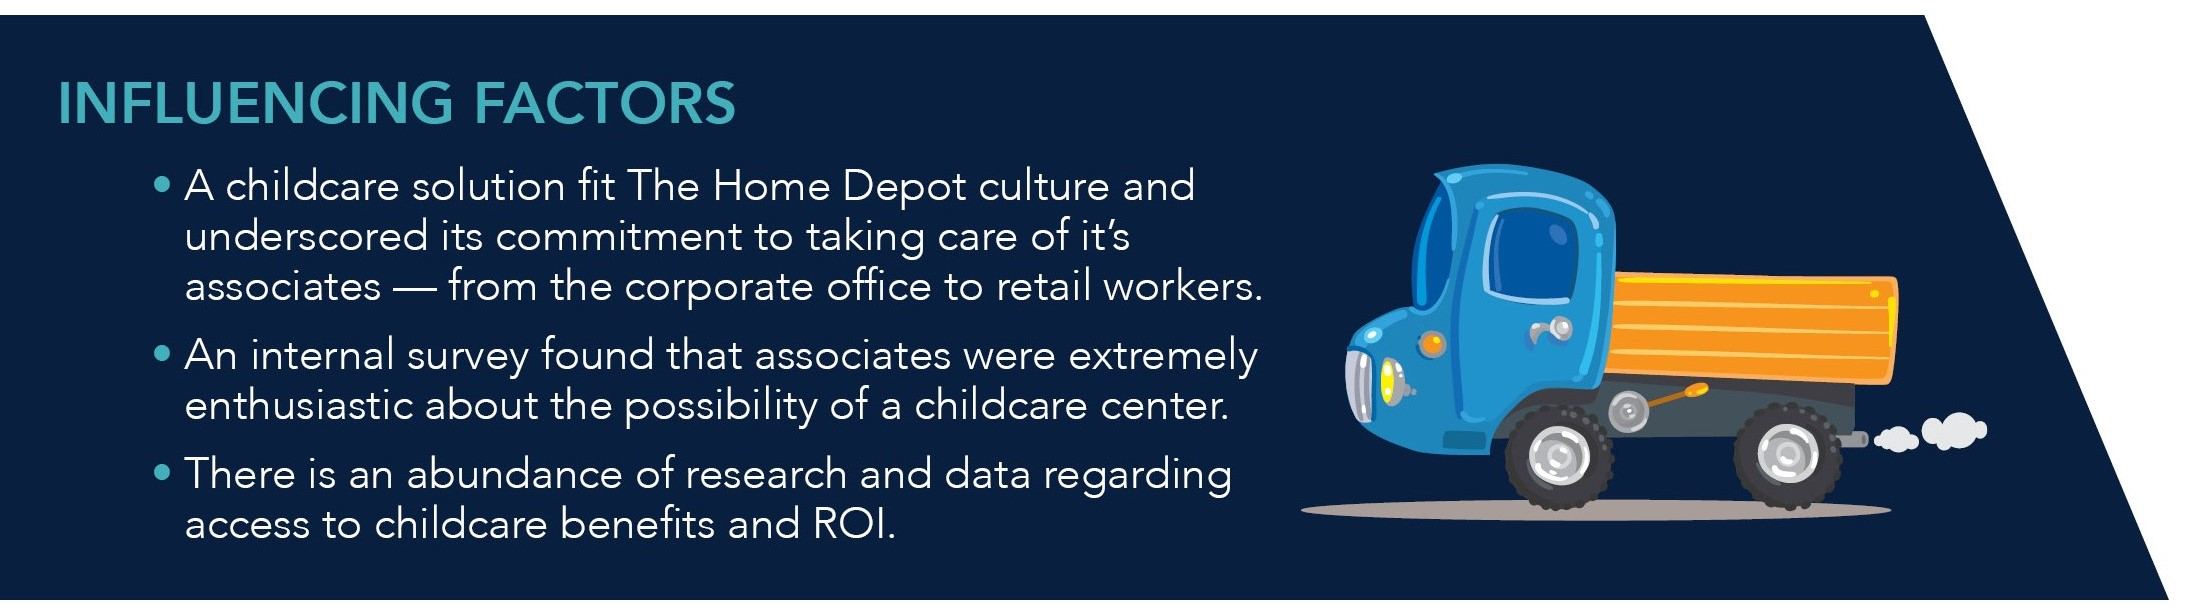 Case Study: Home Depot's Employer-Supported Childcare | U S